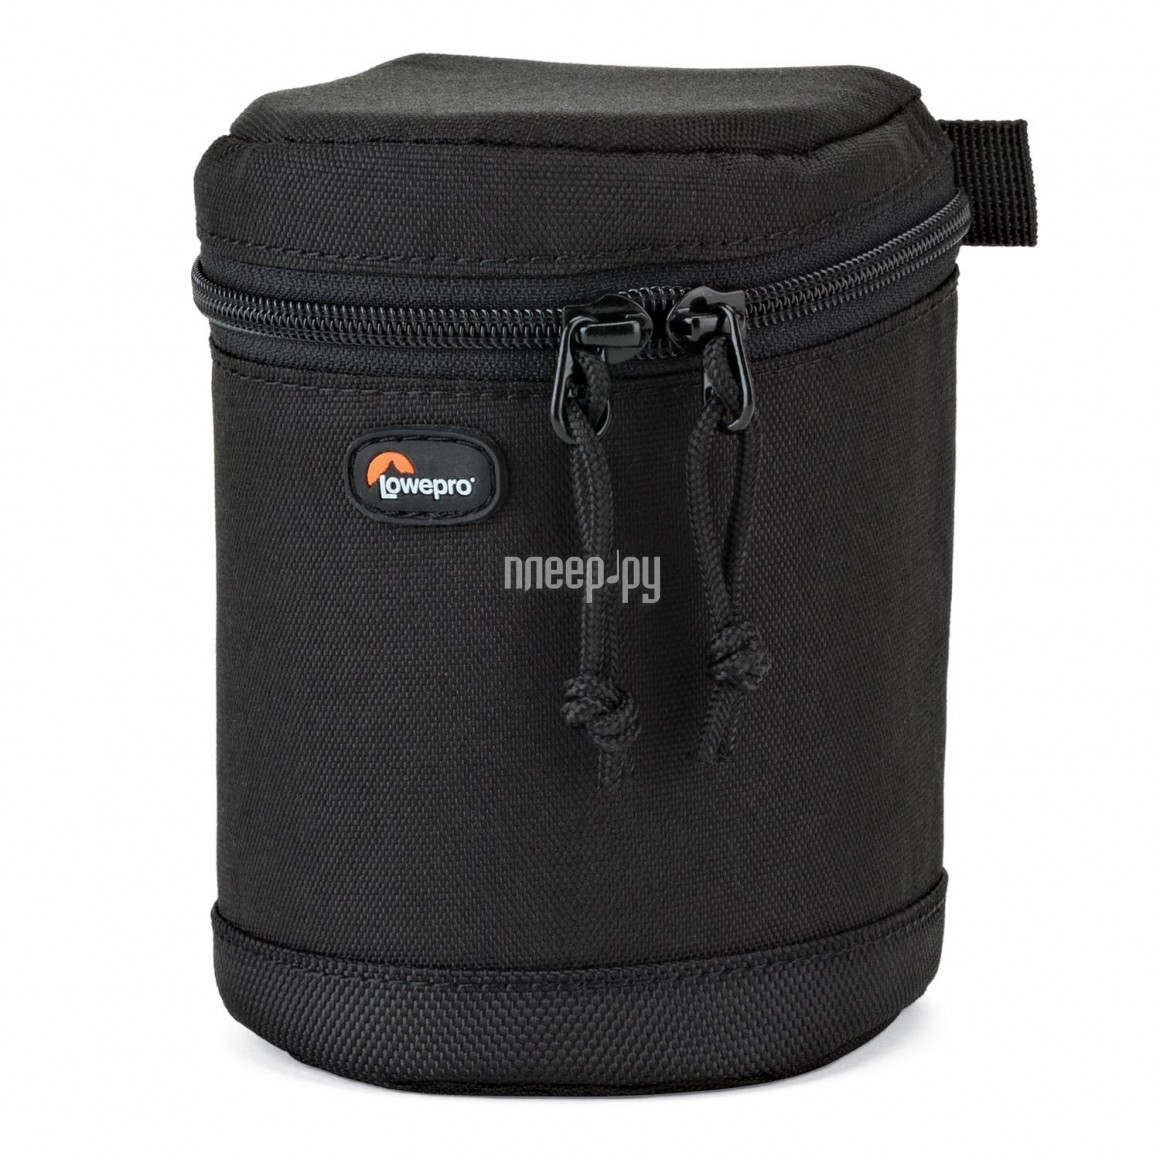 Аксессуар LowePro Lens Case 8x12cm Black 83540